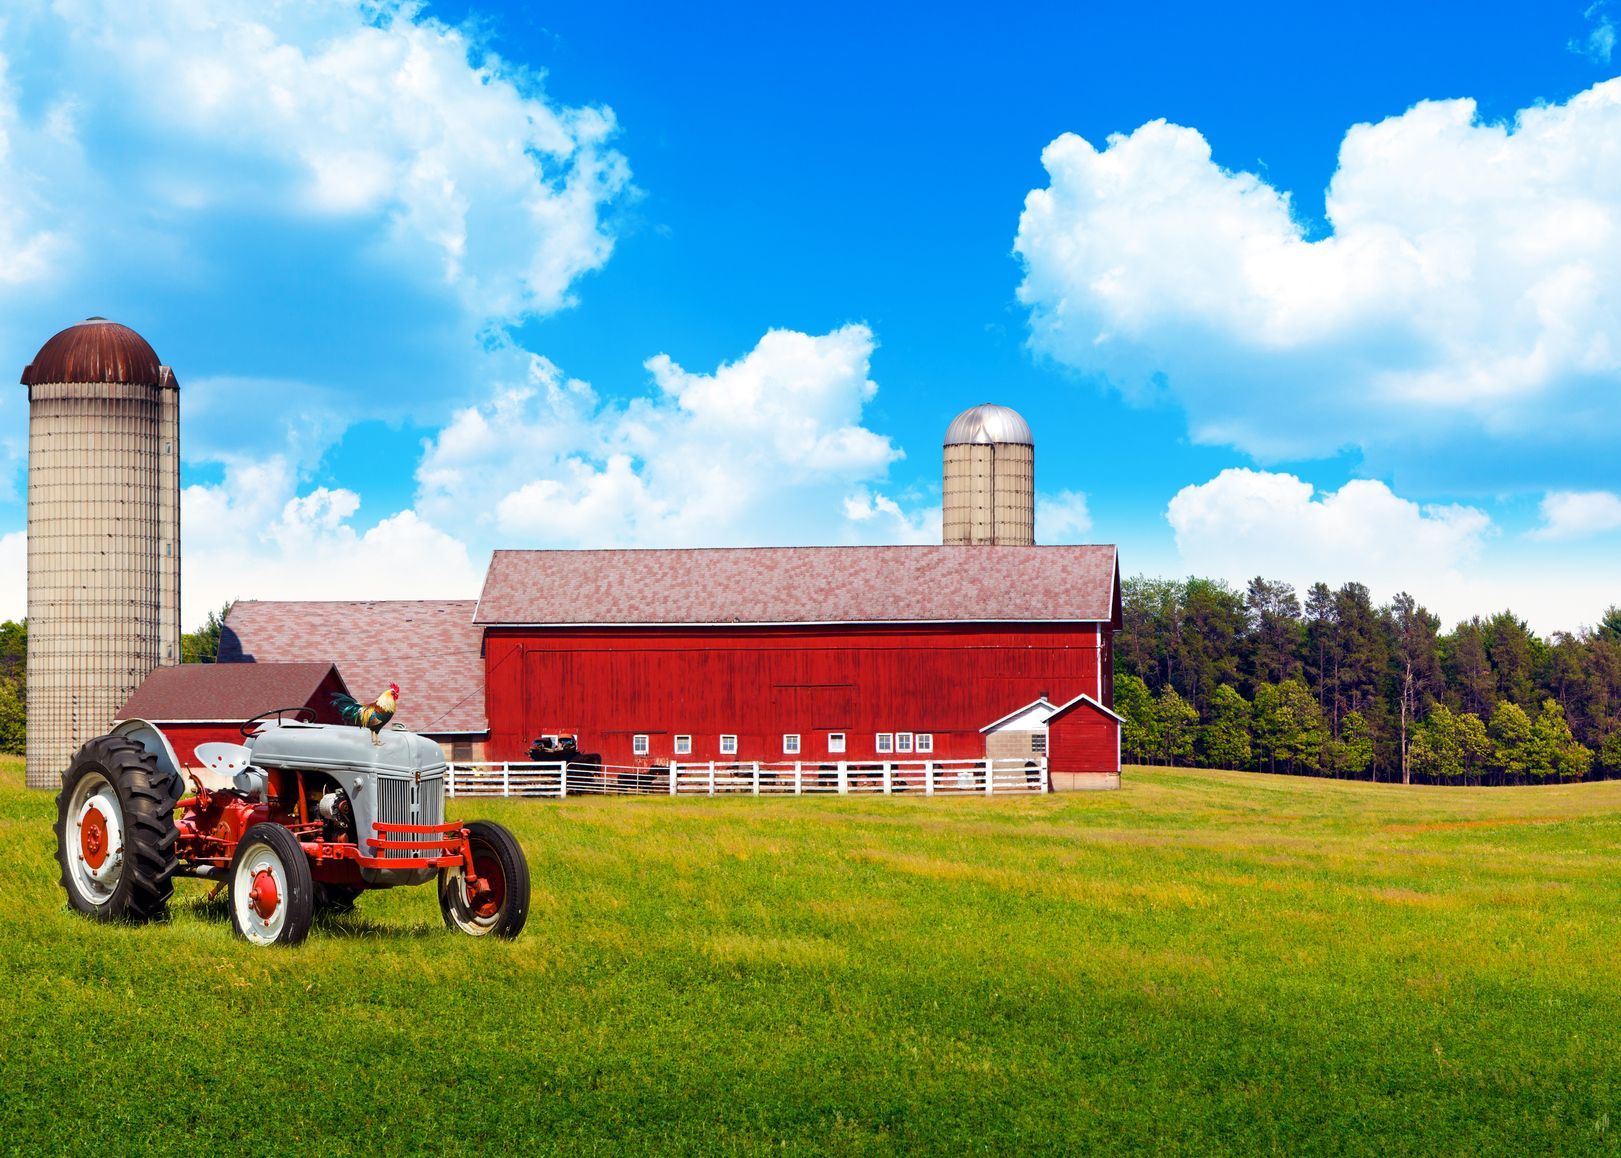 San Diego, CA. Farm & Ranch Insurance